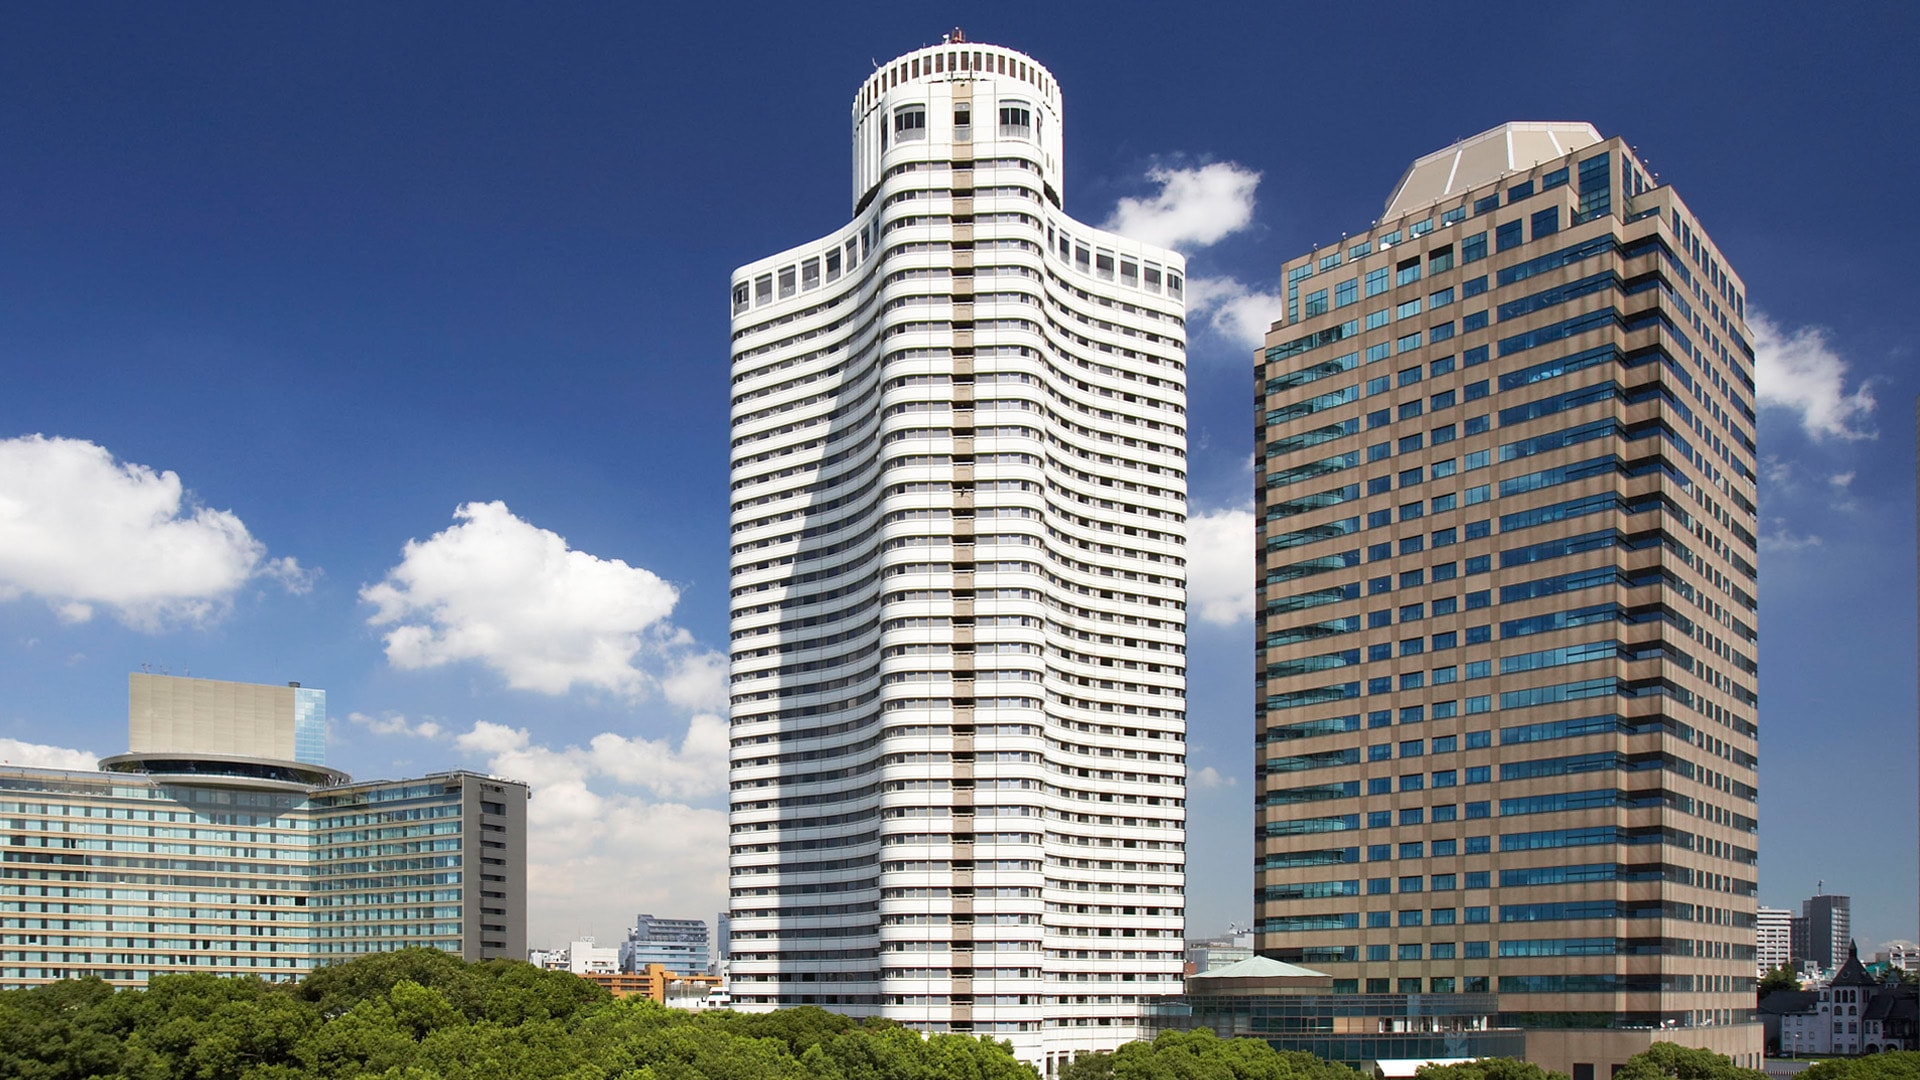 New Otani Garden Tower Accommodations Hotel New Otani